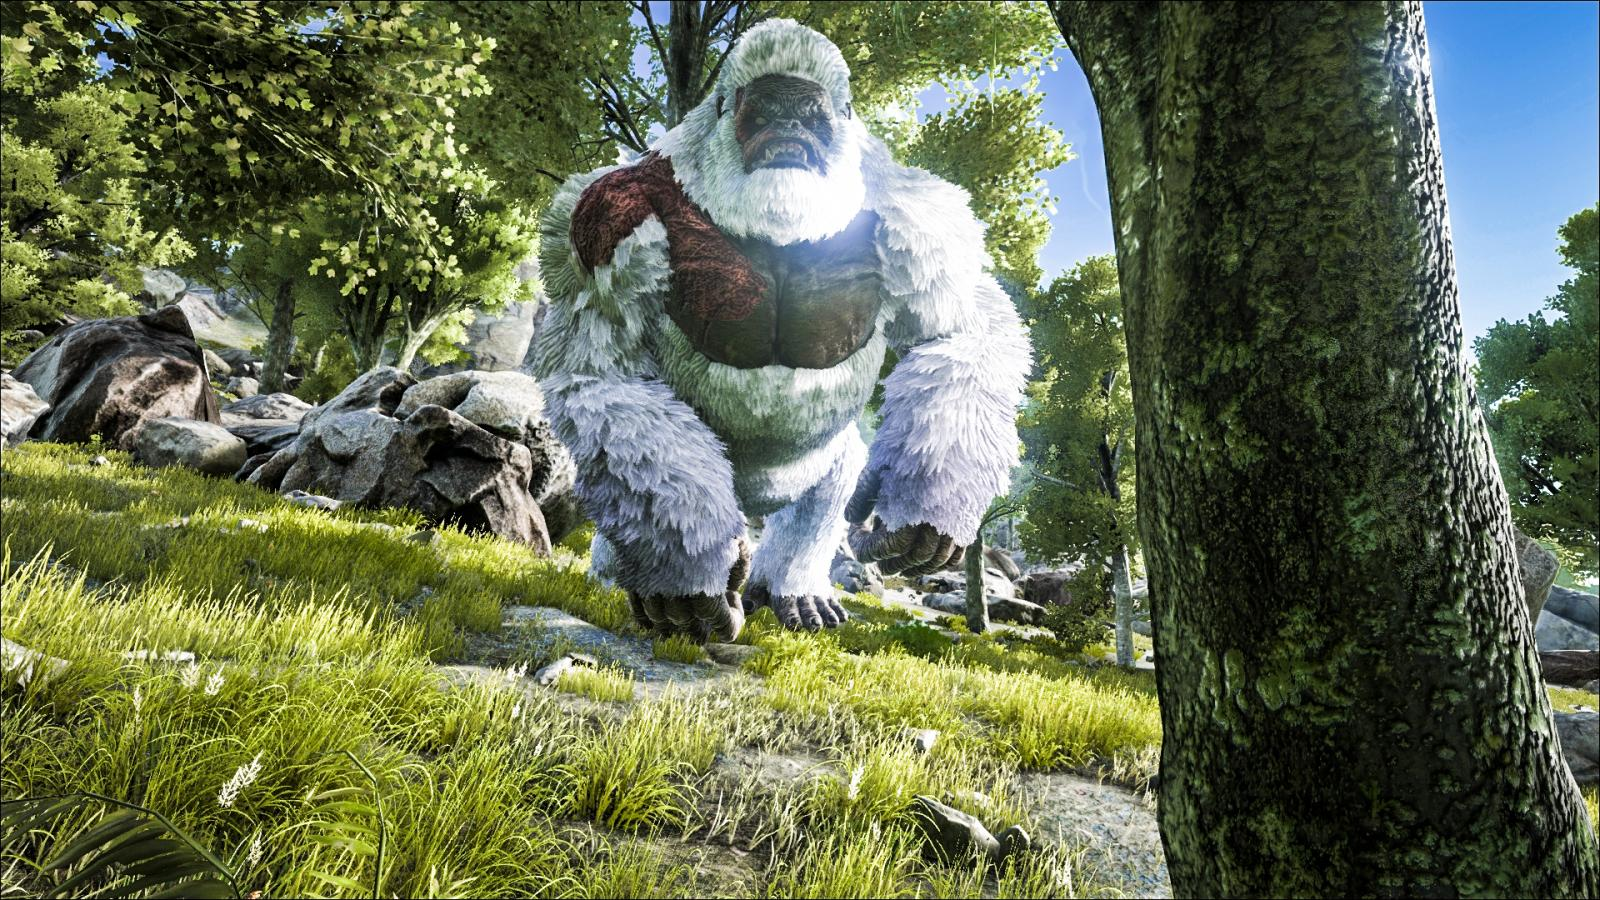 Survival of the Fittest: The Giant Ape